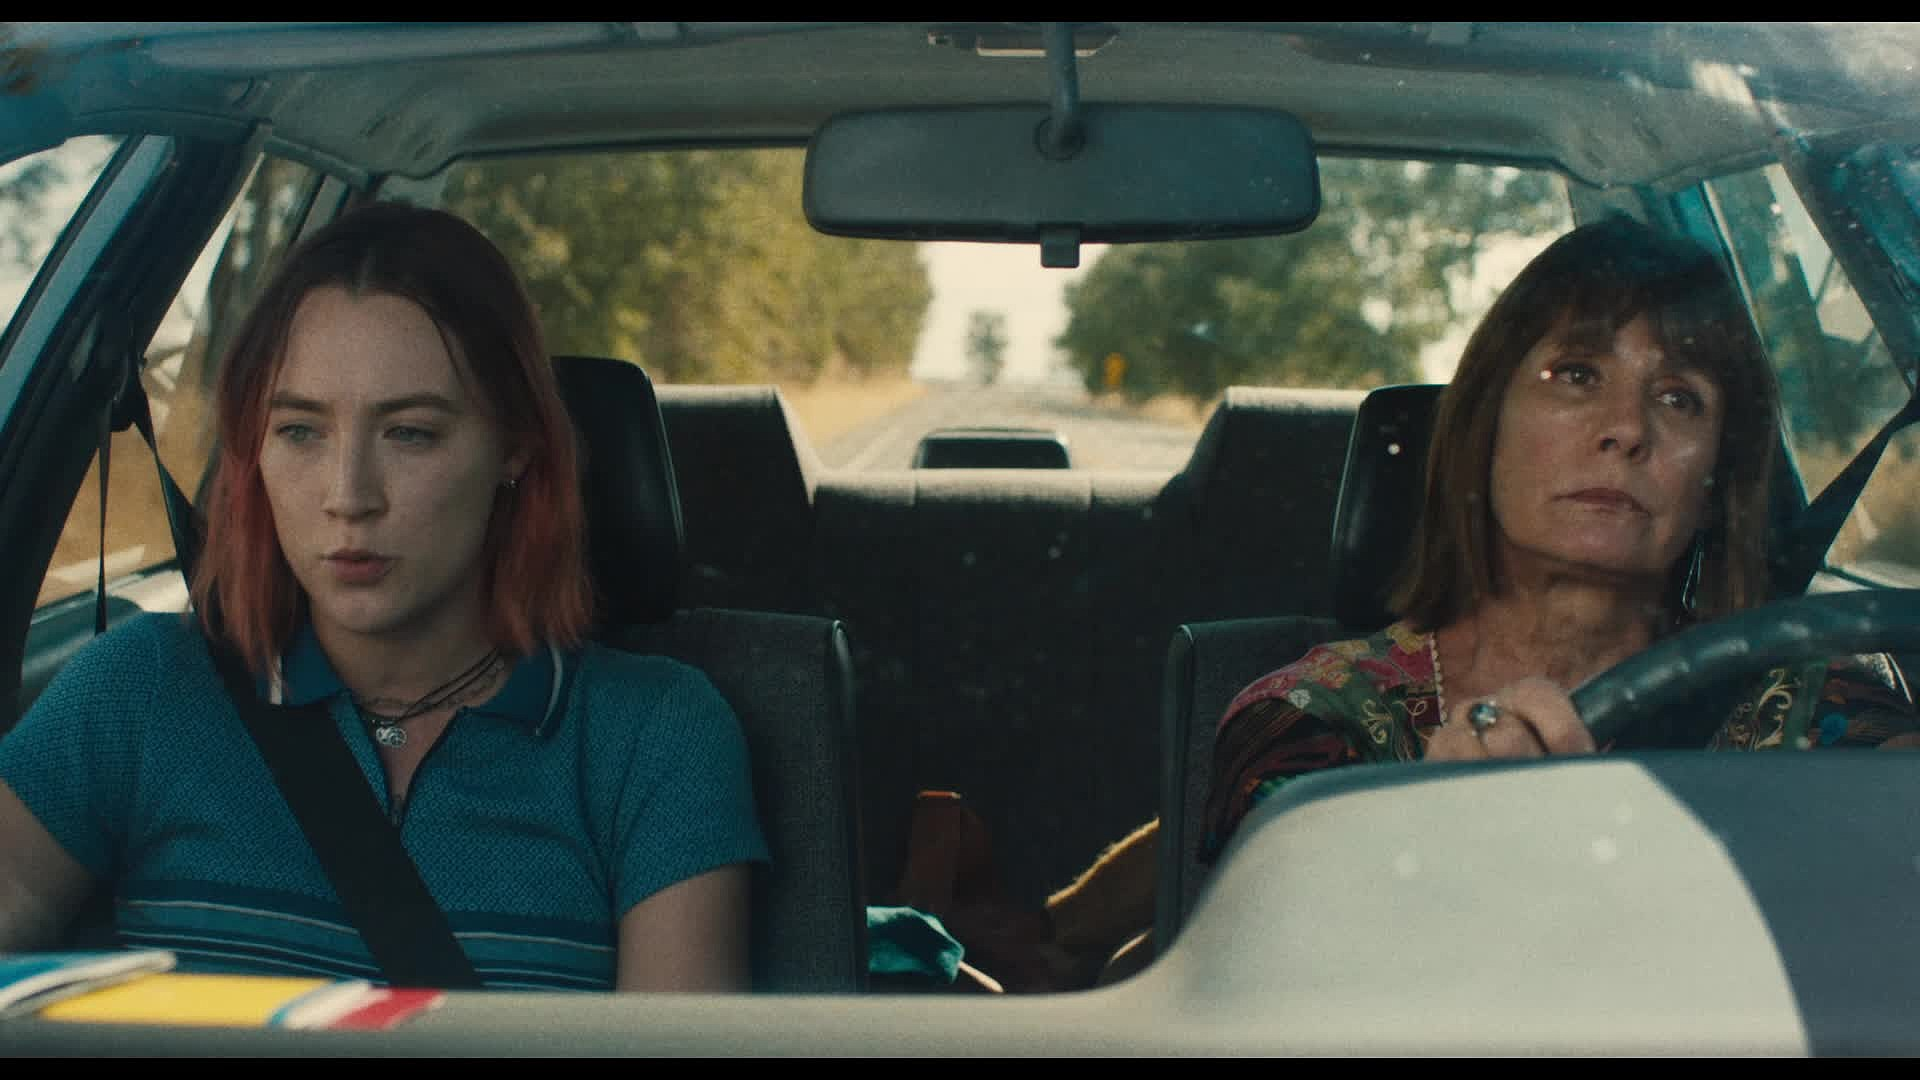 Saoirse Ronan & Laurie Metcalf in 'Lady Bird' which scored for GG nominations.